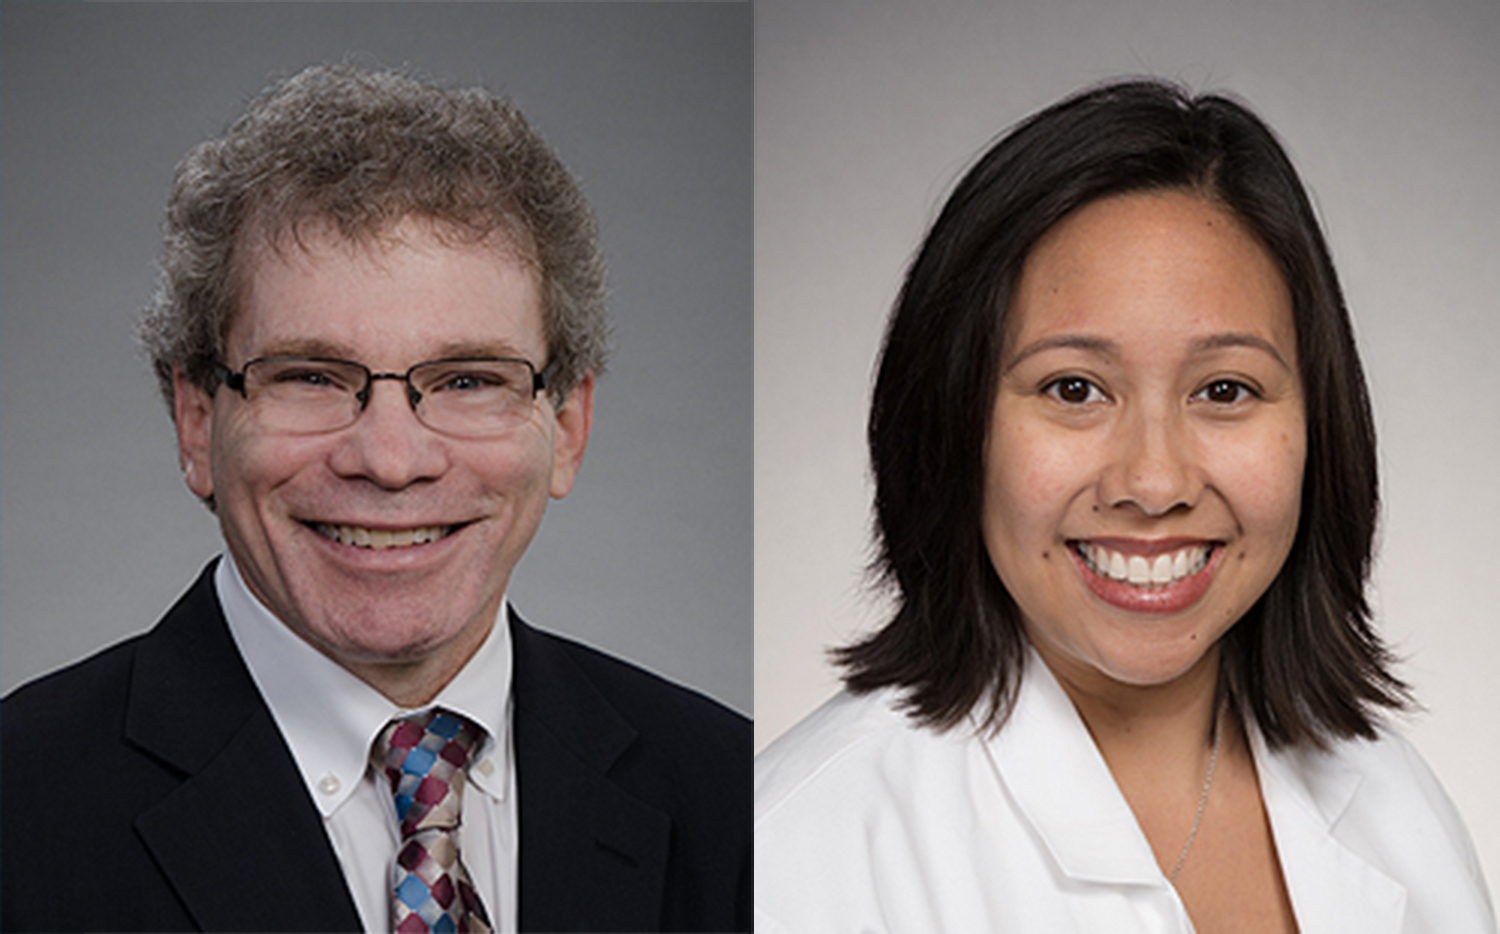 """Irl Hirsch, MD and Cora Espina Erickson, ARNP, CWCN, of the University of Washington, are authors of a new study published in the medical journal, Bone Marrow Transplantation, demonstrating that stringent glucose control among transplant patients is feasible using Glucommander, the computer-guided glucose management system from Glytec. According to Hirsch, """"Up until now, most thought it would be difficult to even consider a clinical trial to assess if glucose control could impact outcomes, including mortality, because our insulin protocols were not robust enough to deal with the high-dose steroids, TPN, and occasional eating all at the same time. The Glucommander system showed in our feasibility study it is indeed possible to control glycemia in this population."""" (Photo: Business Wire)."""